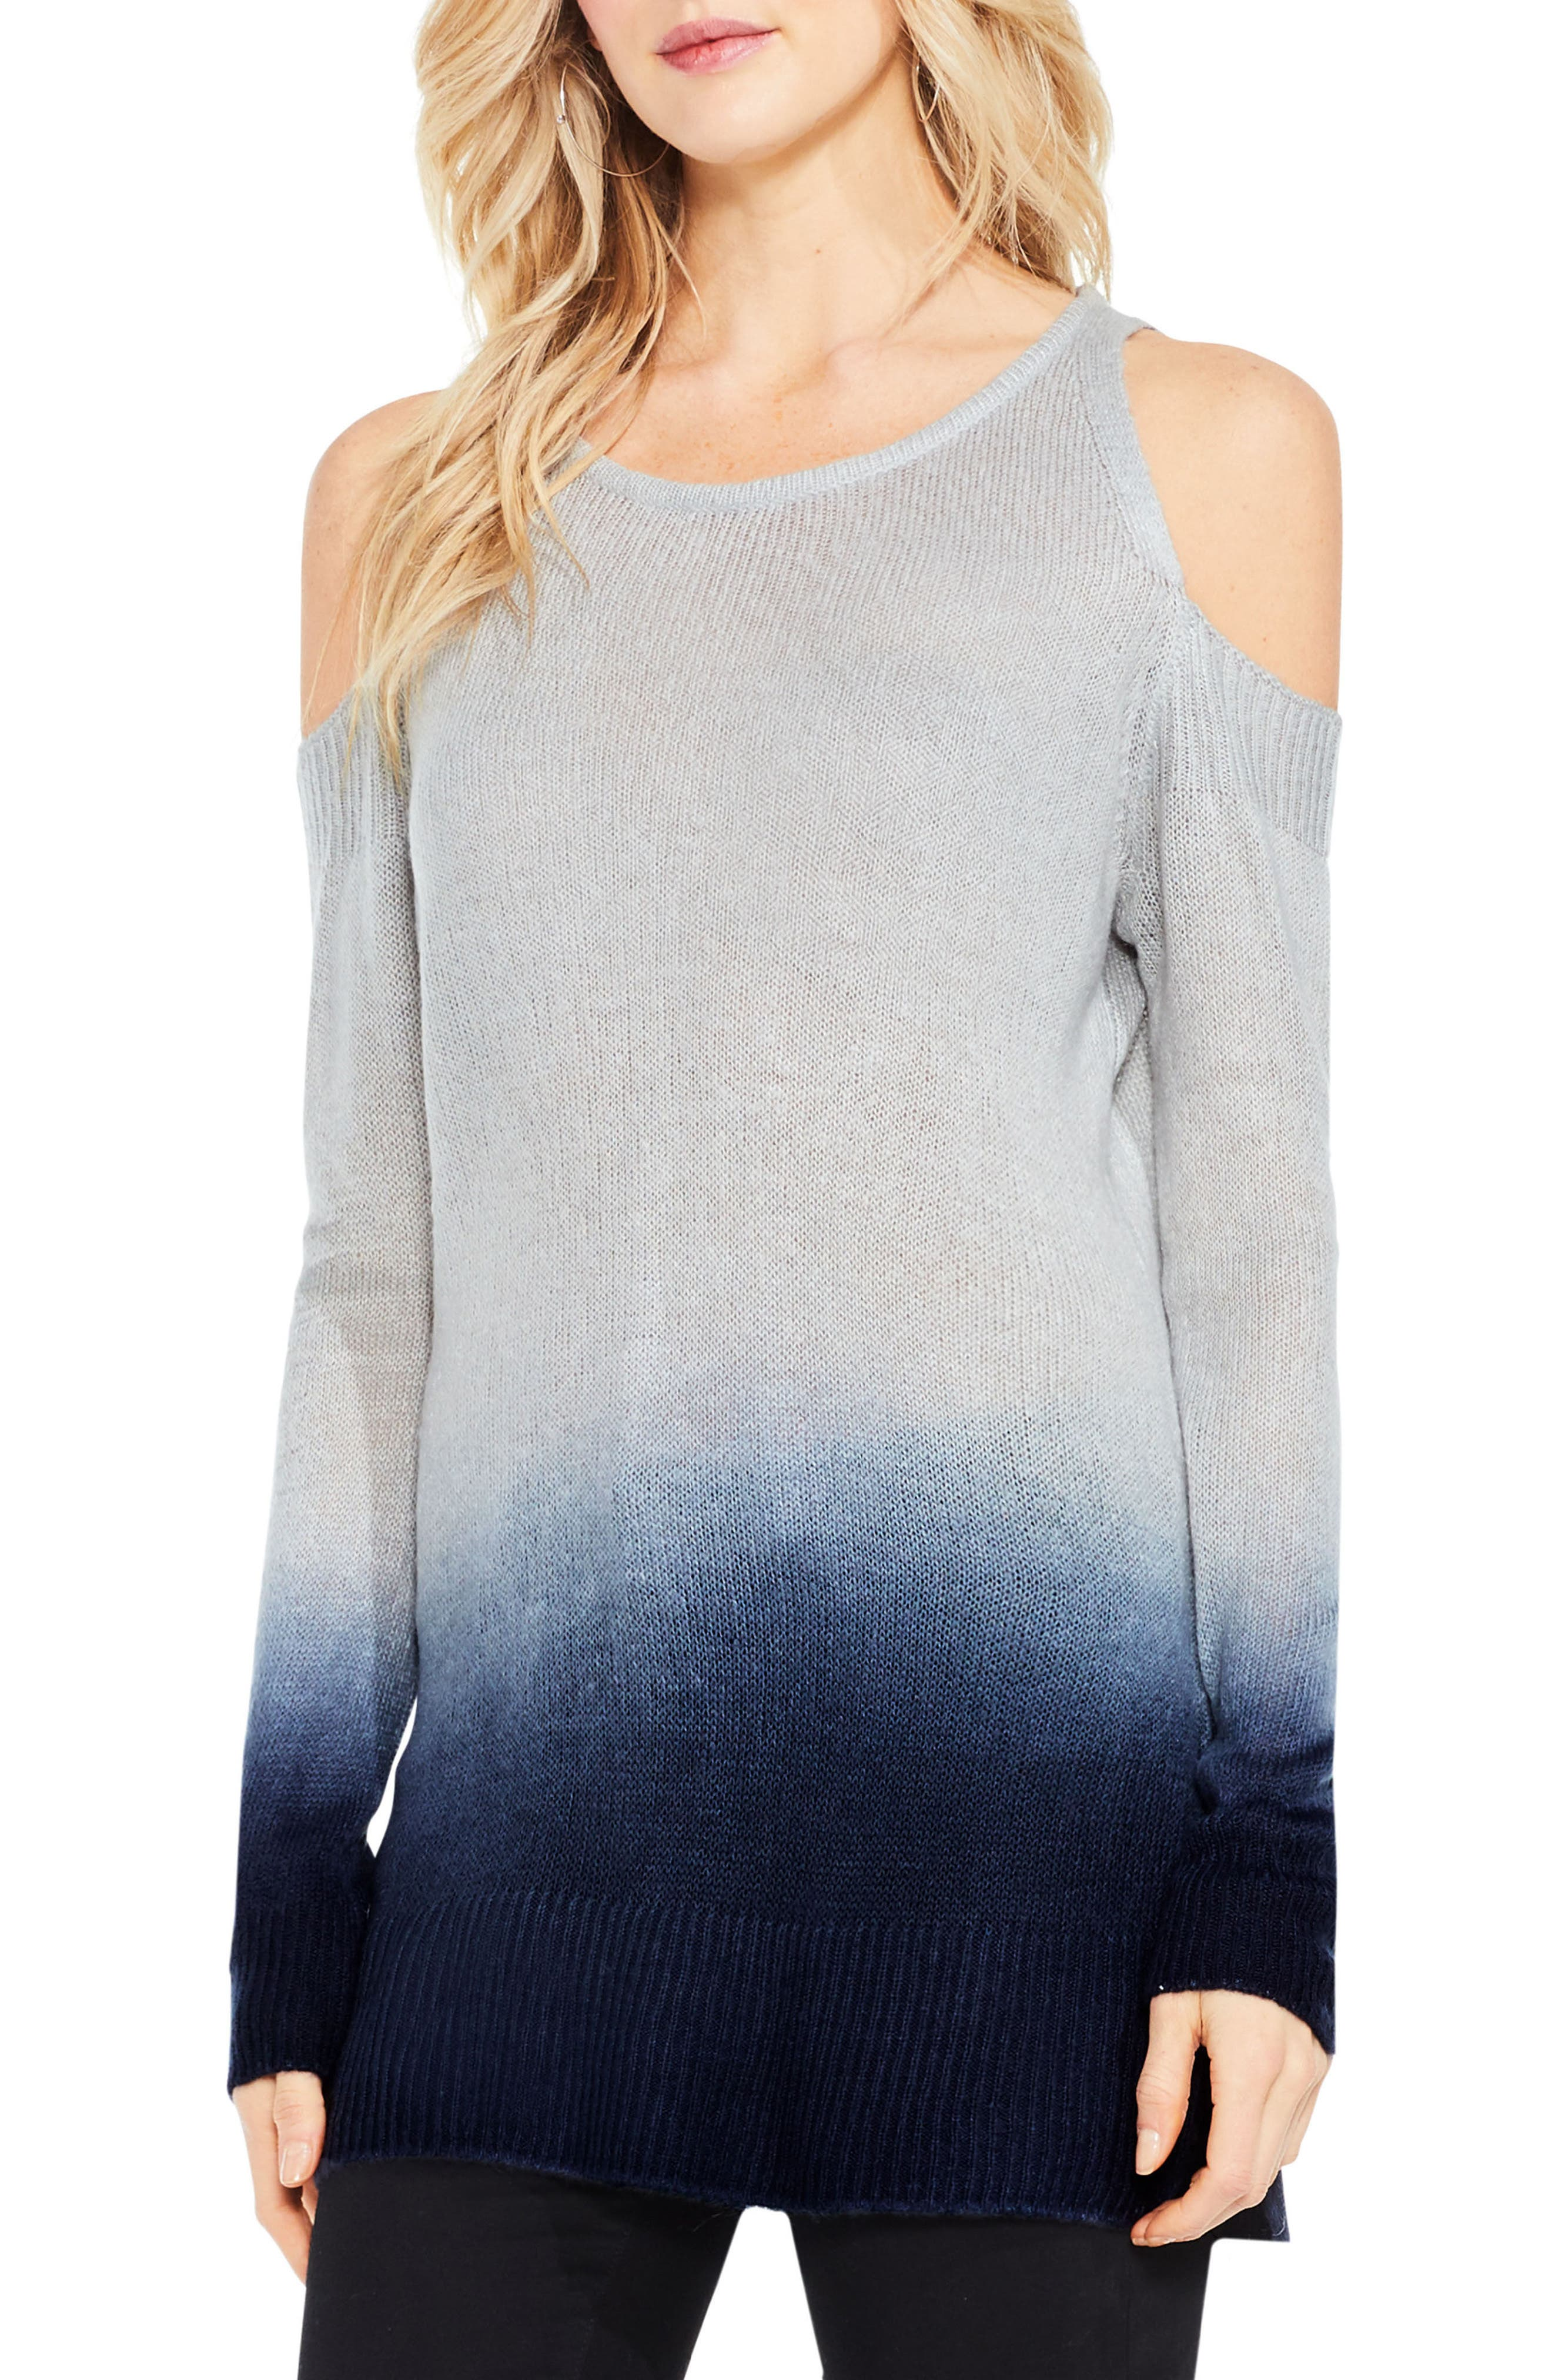 Alternate Image 1 Selected - Two by Vince Camuto Cold Shoulder Ombré Sweater